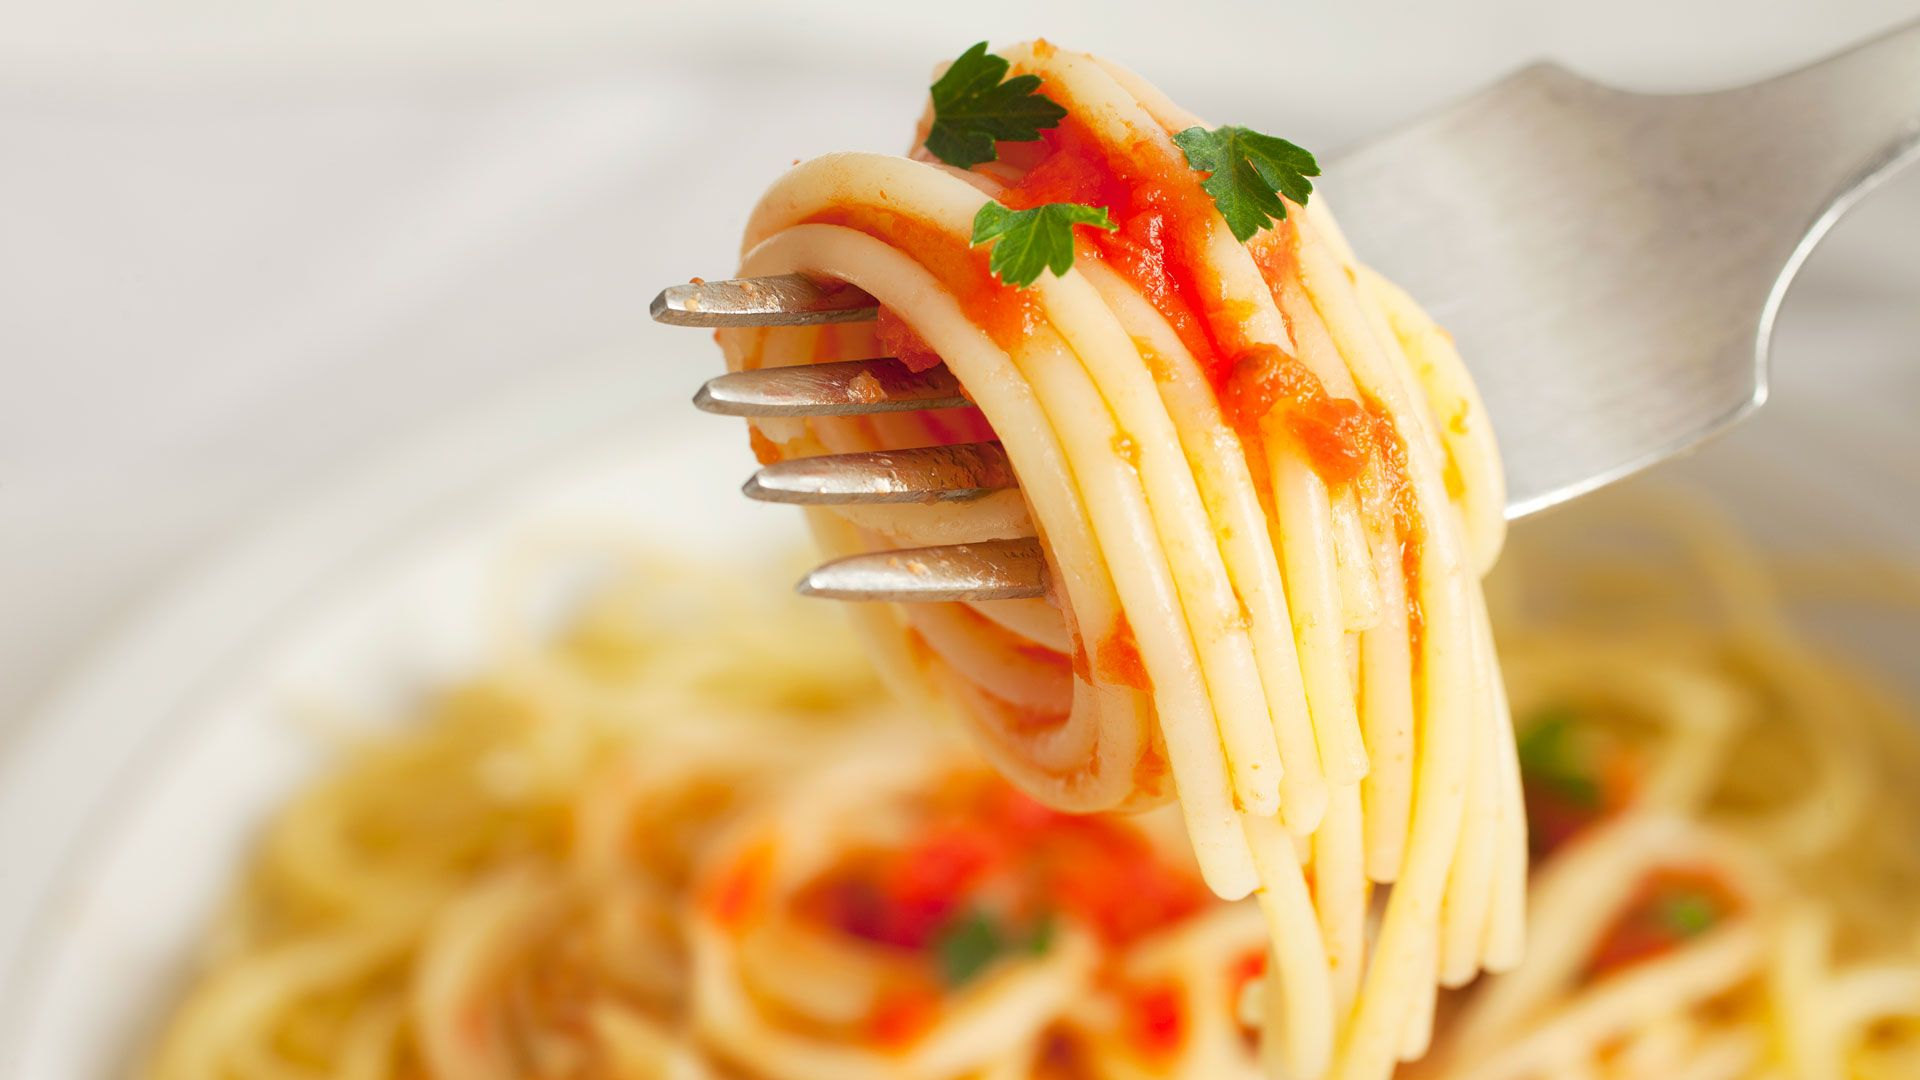 spaghetti with tomato sauce on a fork